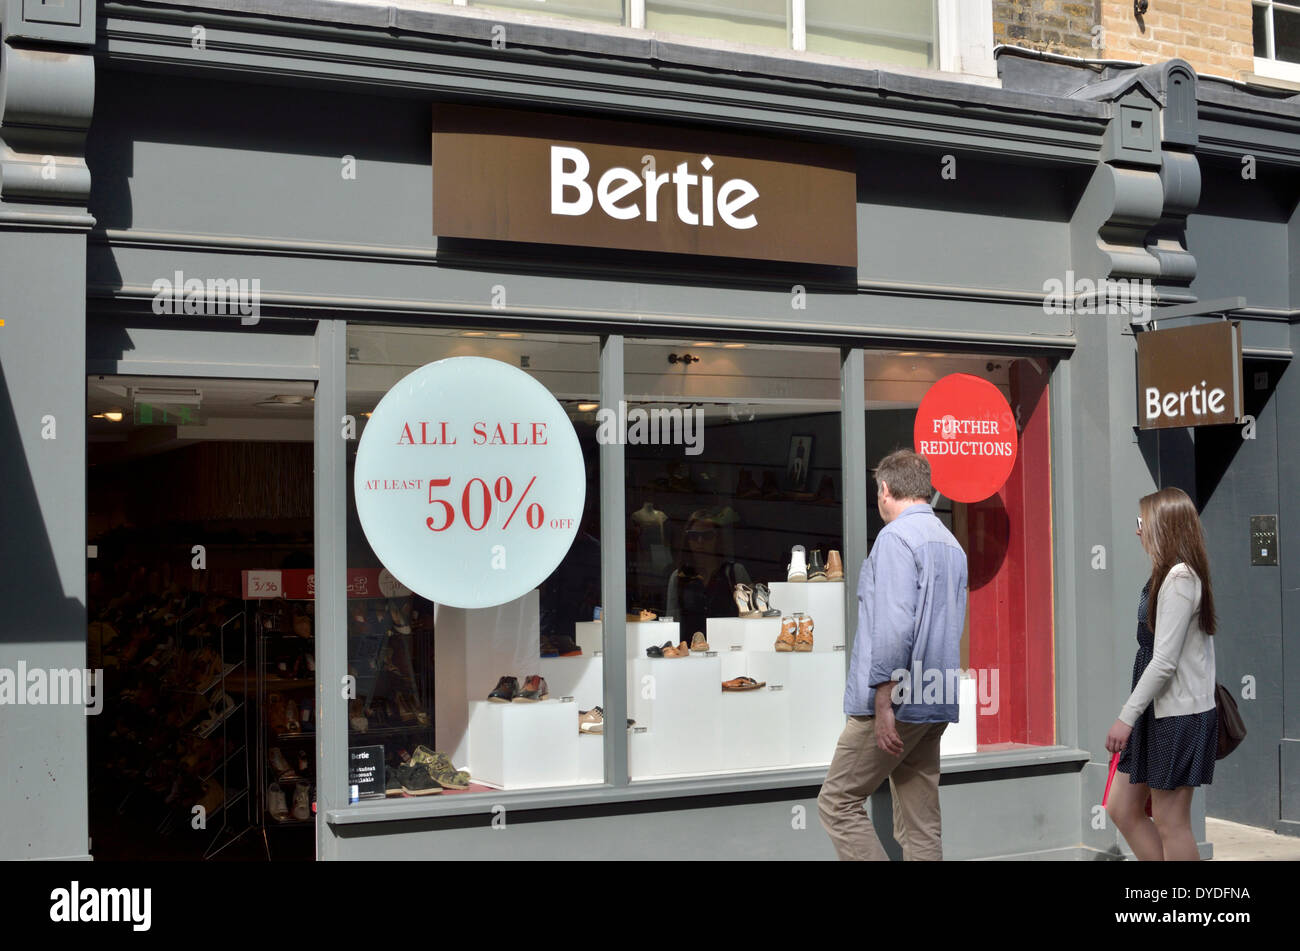 Bertie shoe shop in South Molton Street. - Stock Image